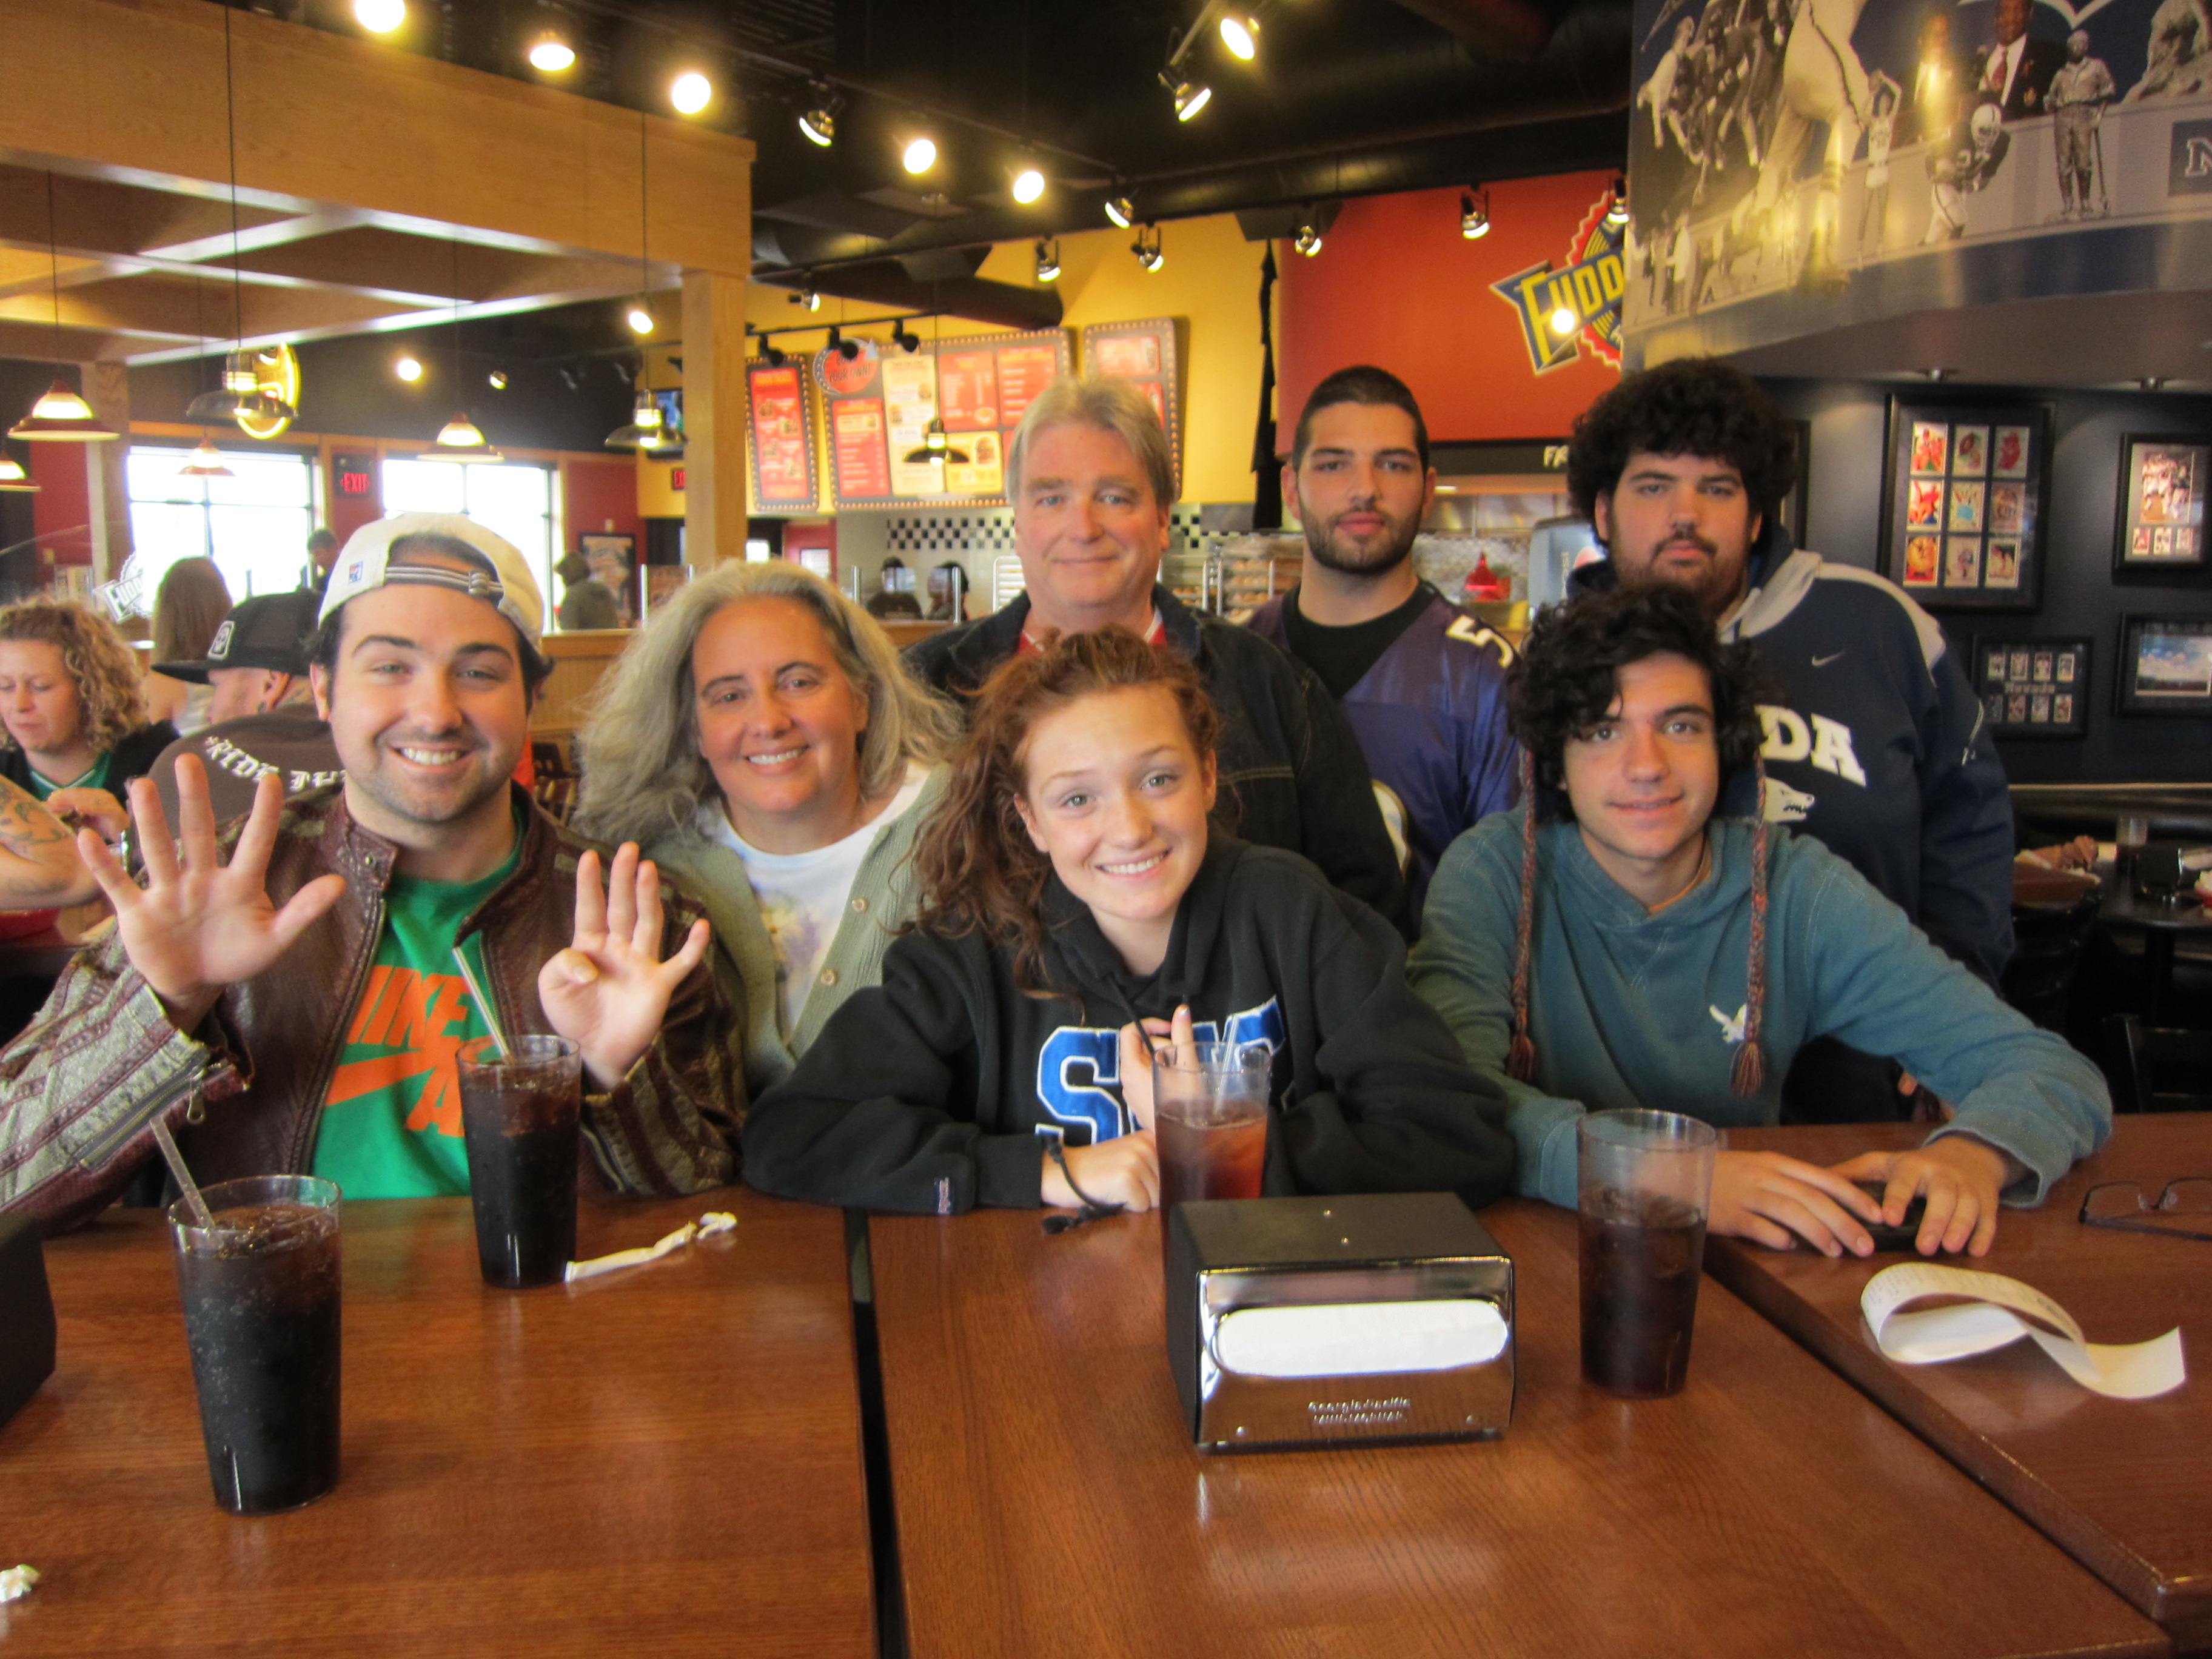 Dale Rogers' 54th Birthday at Fuddruckers in Reno